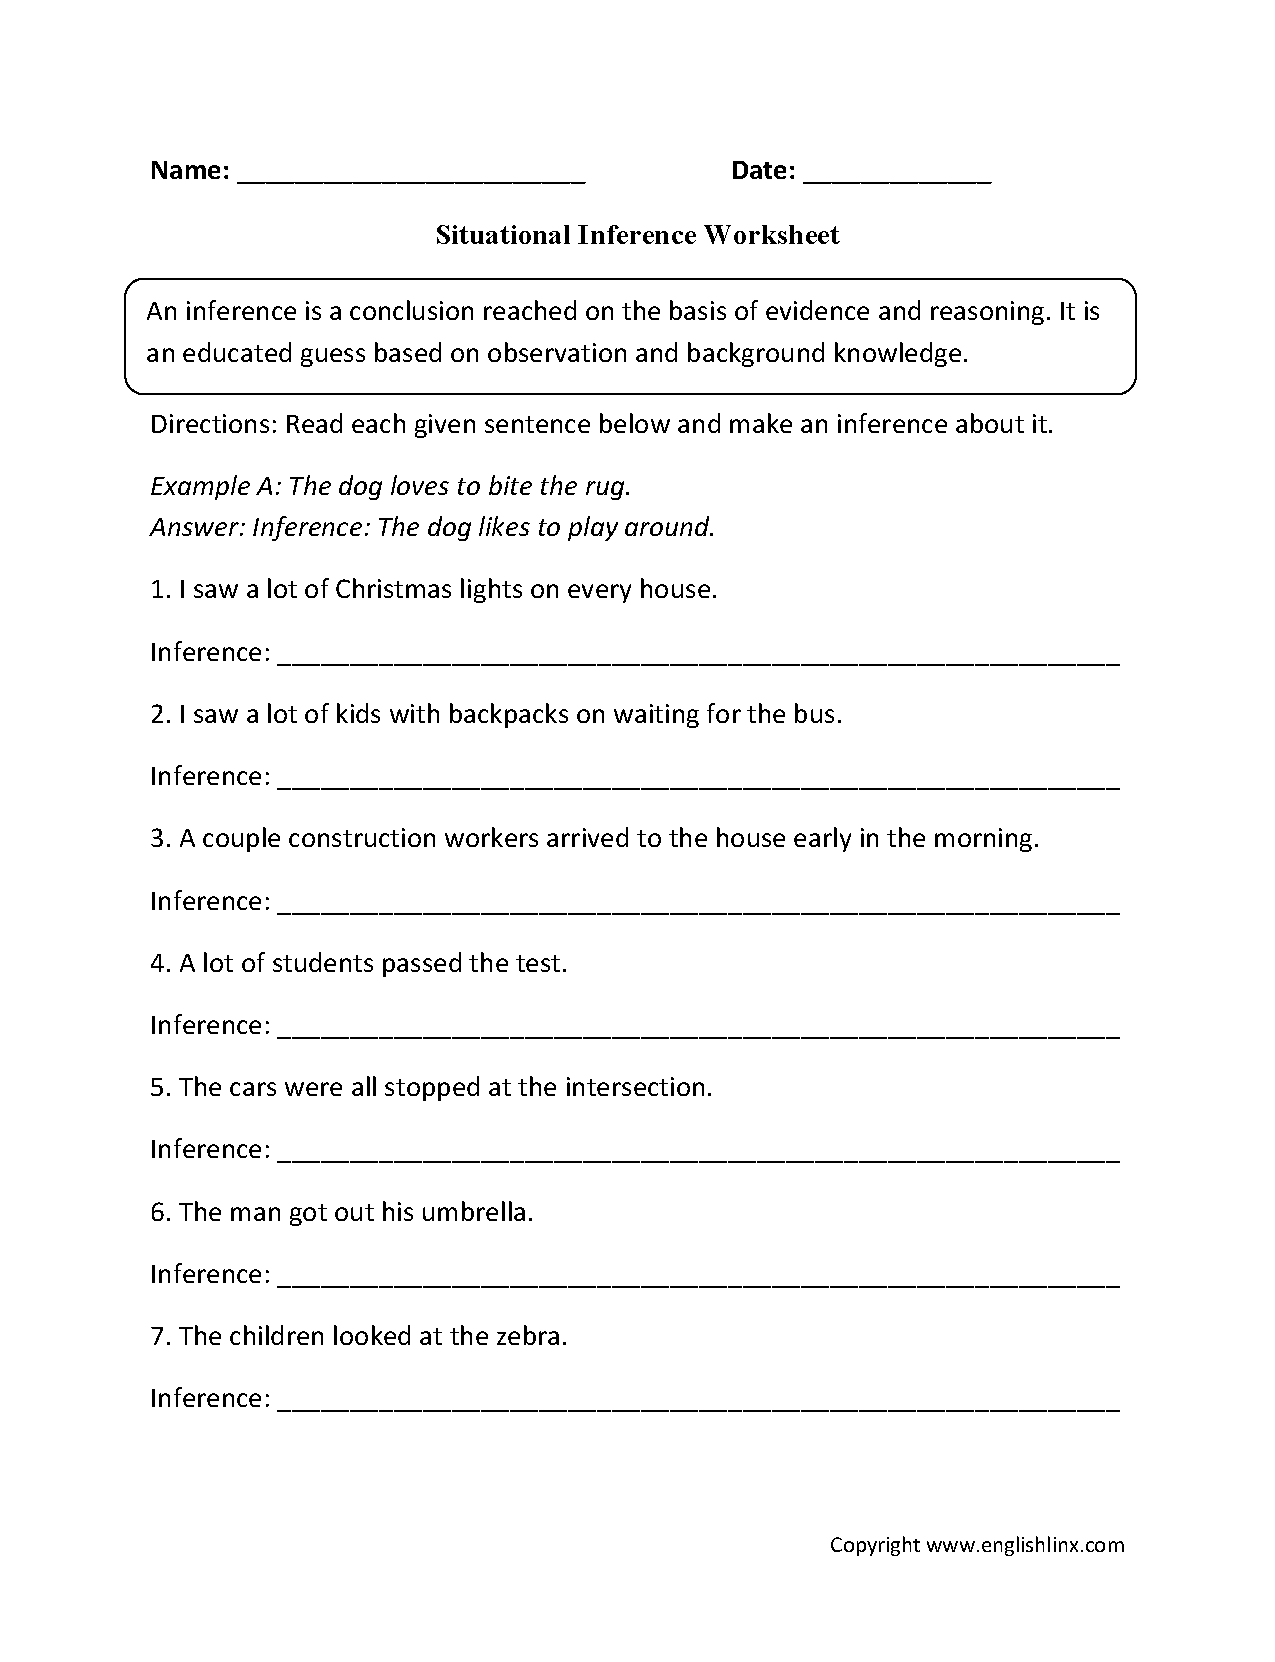 Worksheets Making Inferences Worksheet reading worksheets inference worksheets